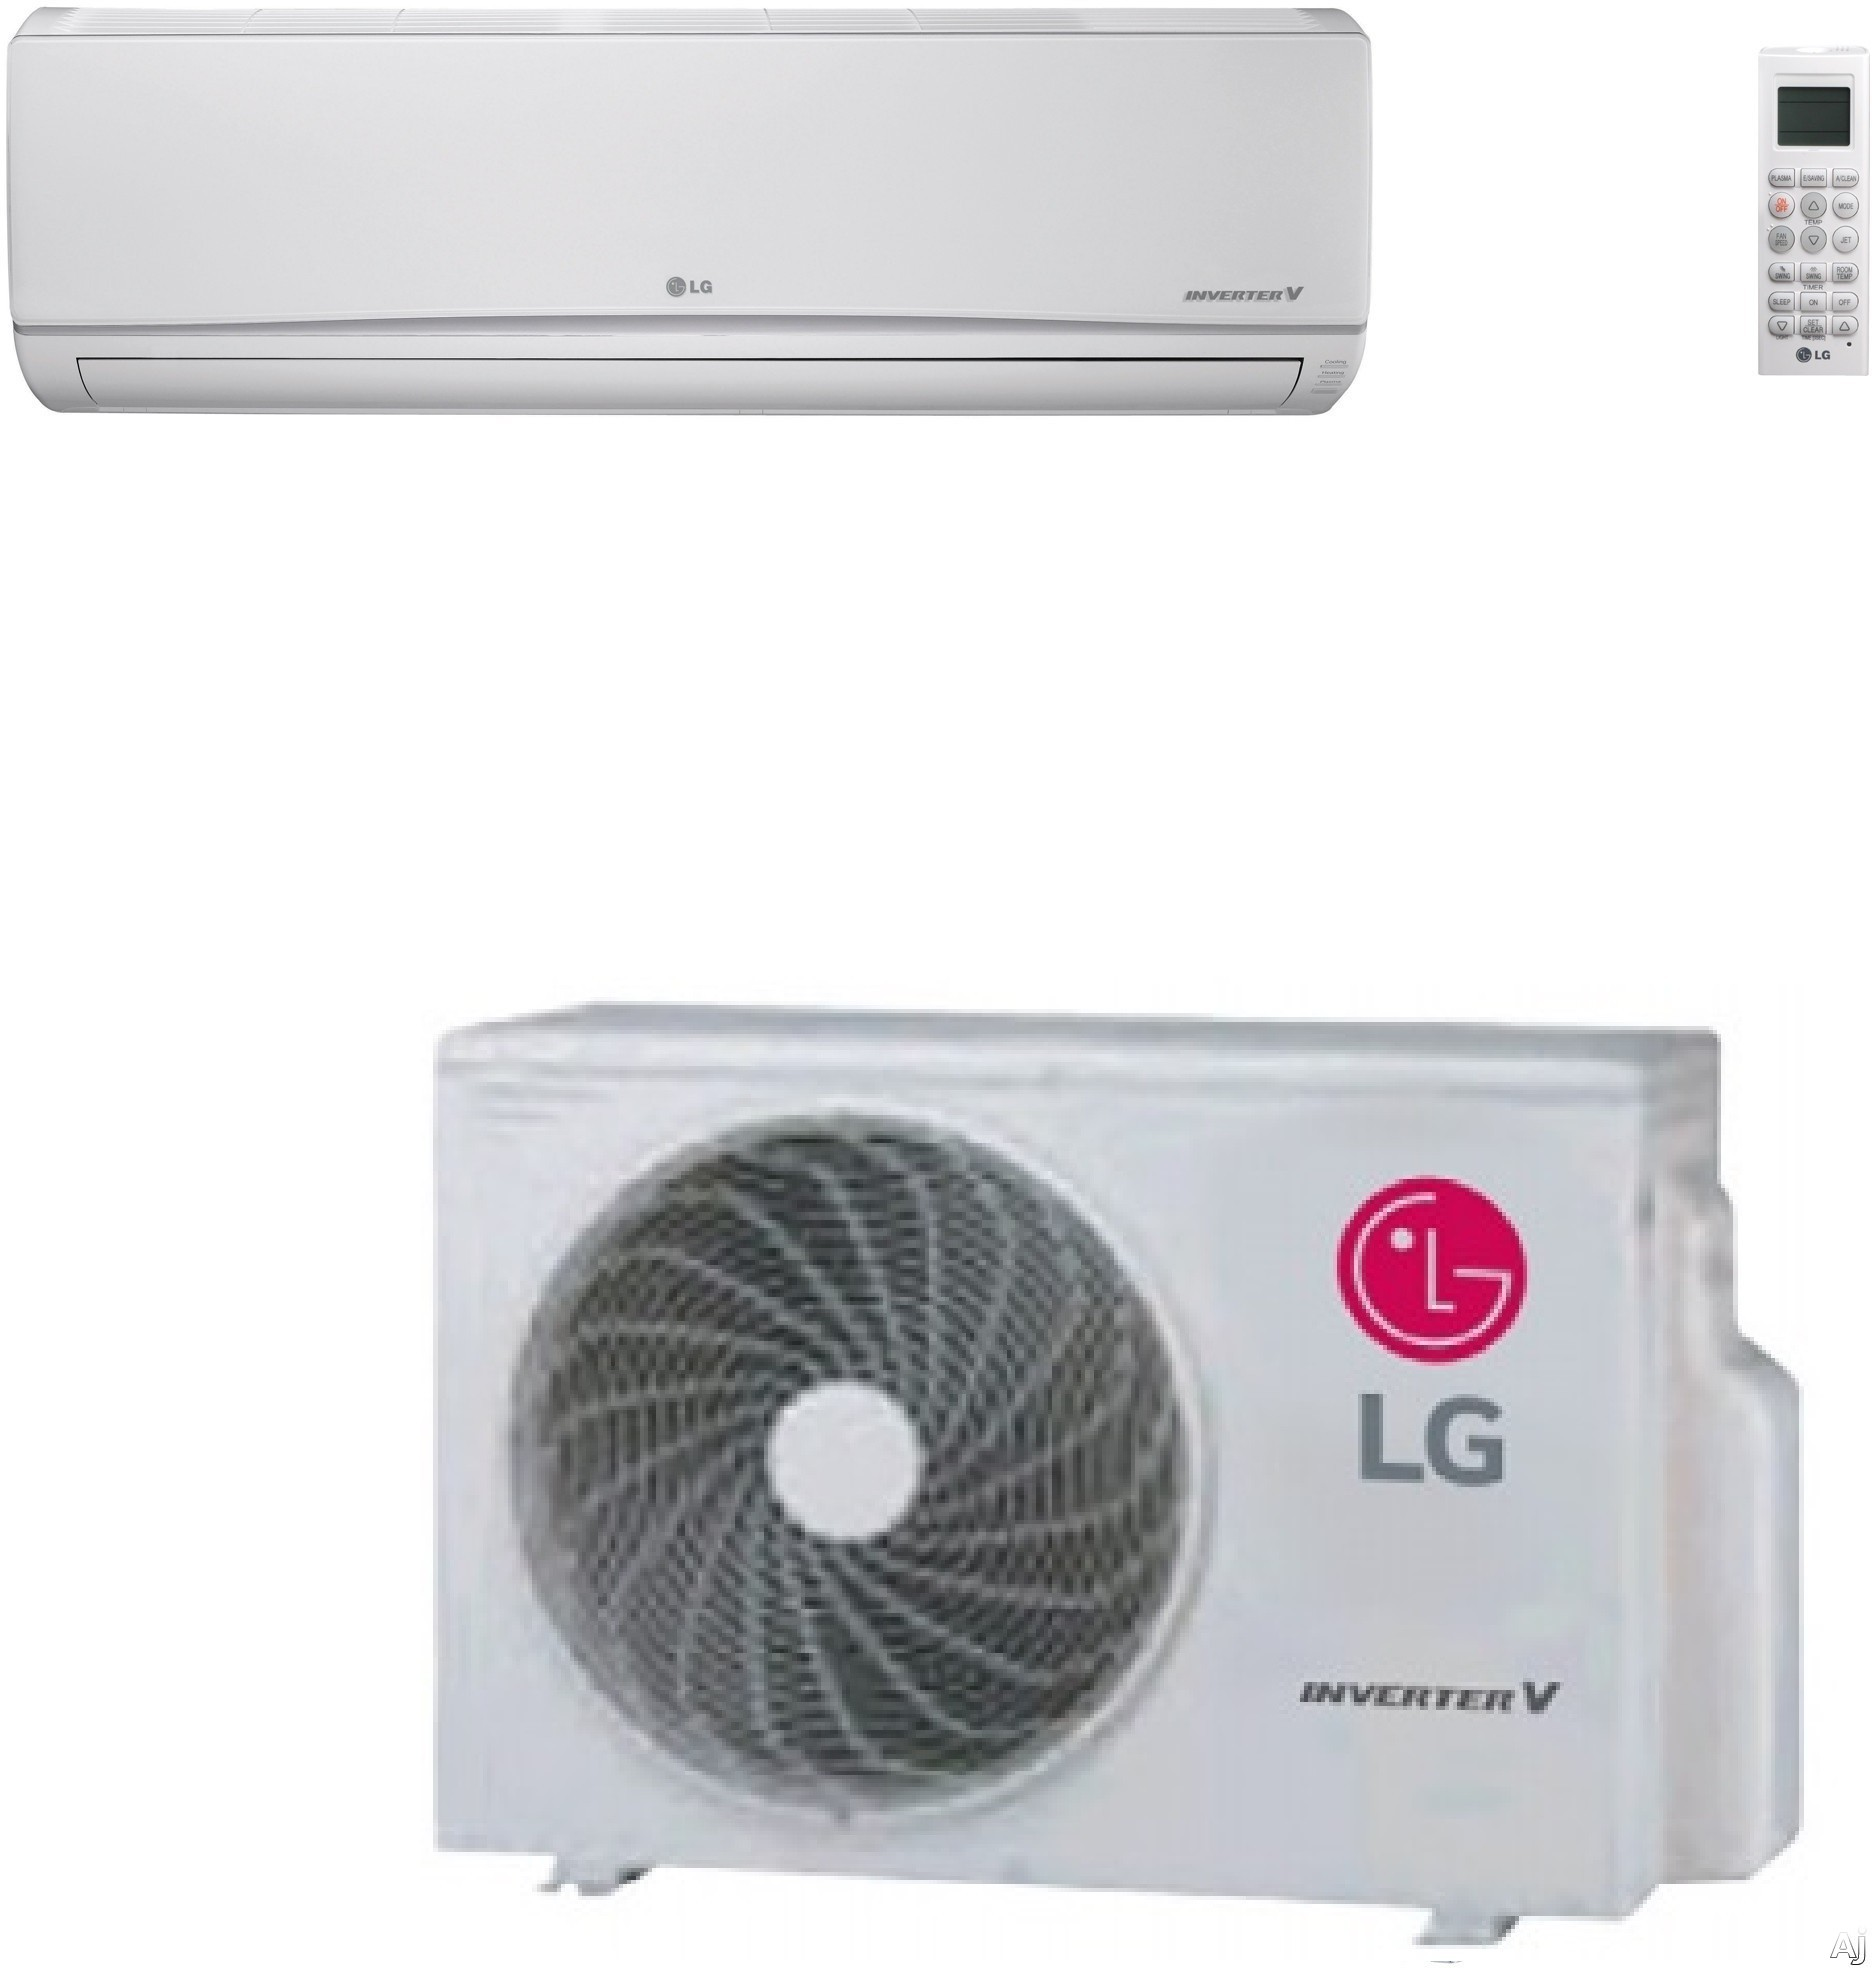 LG LS180HEV1 17,000 BTU Mega Single Zone Wall-Mount Ductless Split System with 19,000 BTU Heat Pump, 18.0 SEER, 10.97 EER and Inverter Compressor (LSN180HEV1 Indoor / LSU180HEV1 Outdoor) LS180HEV1